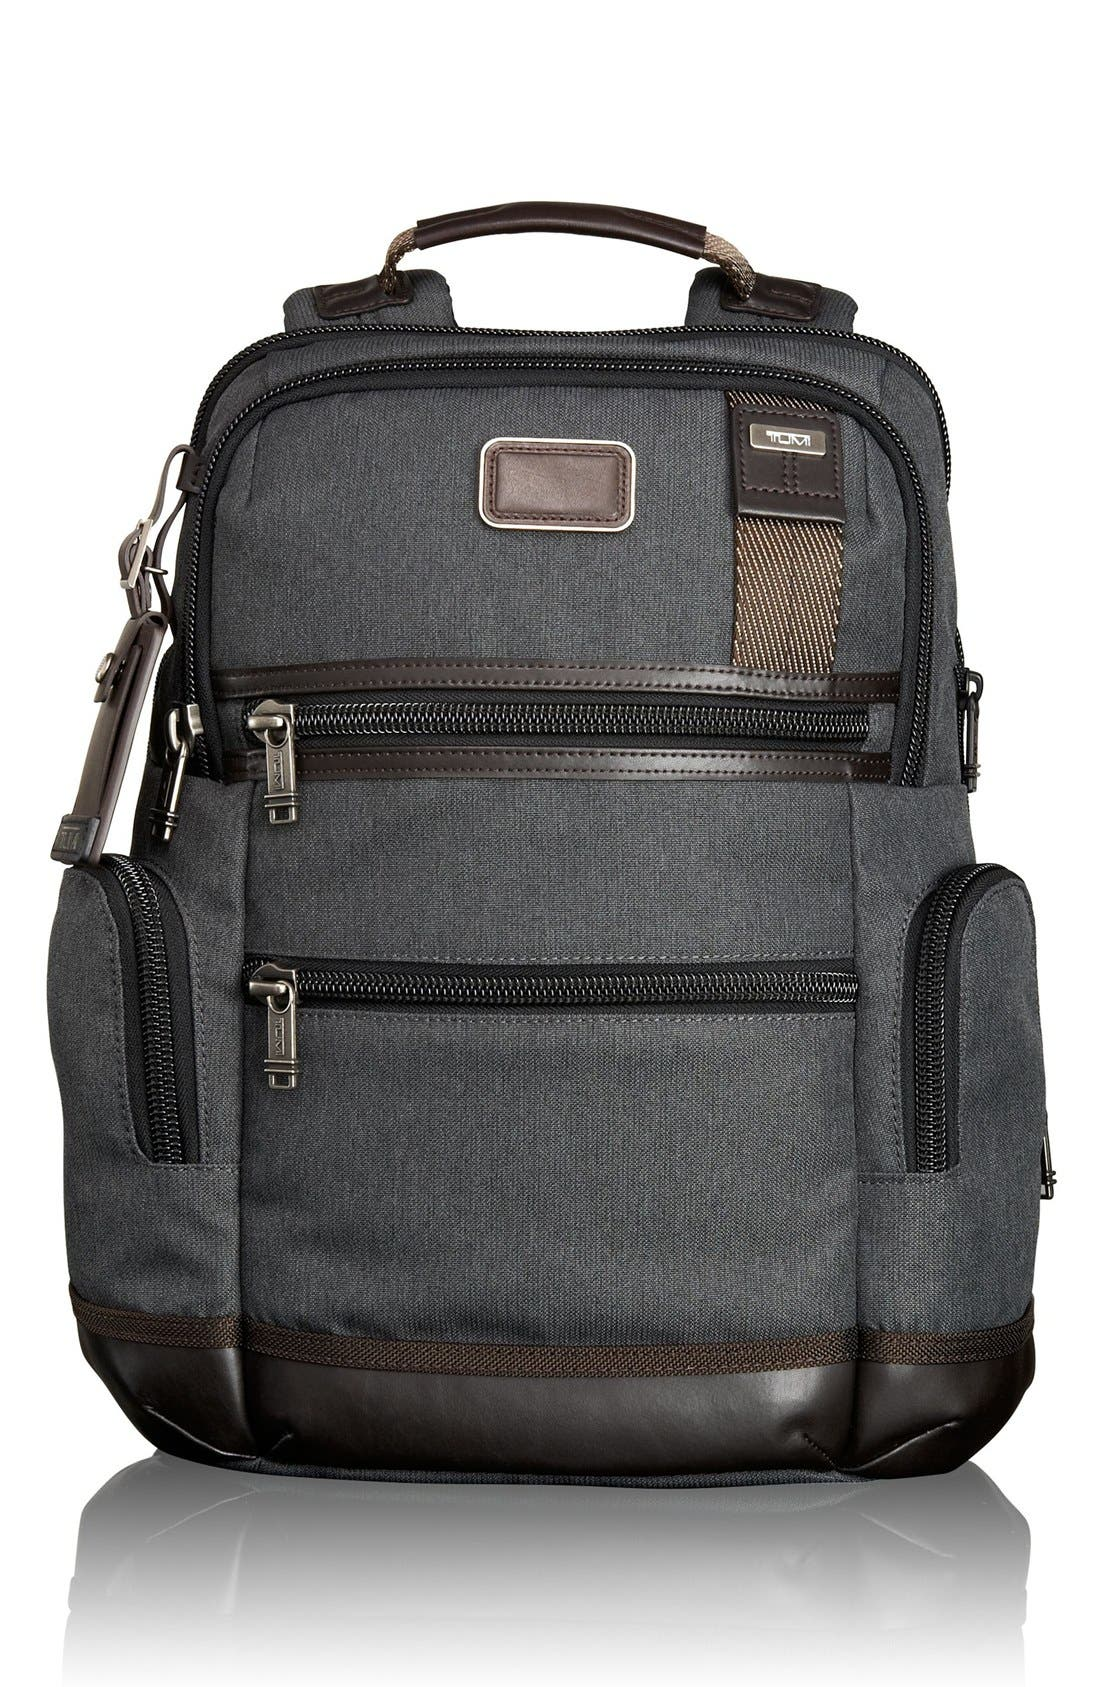 Tumi Backpacks & Luggage | Nordstrom